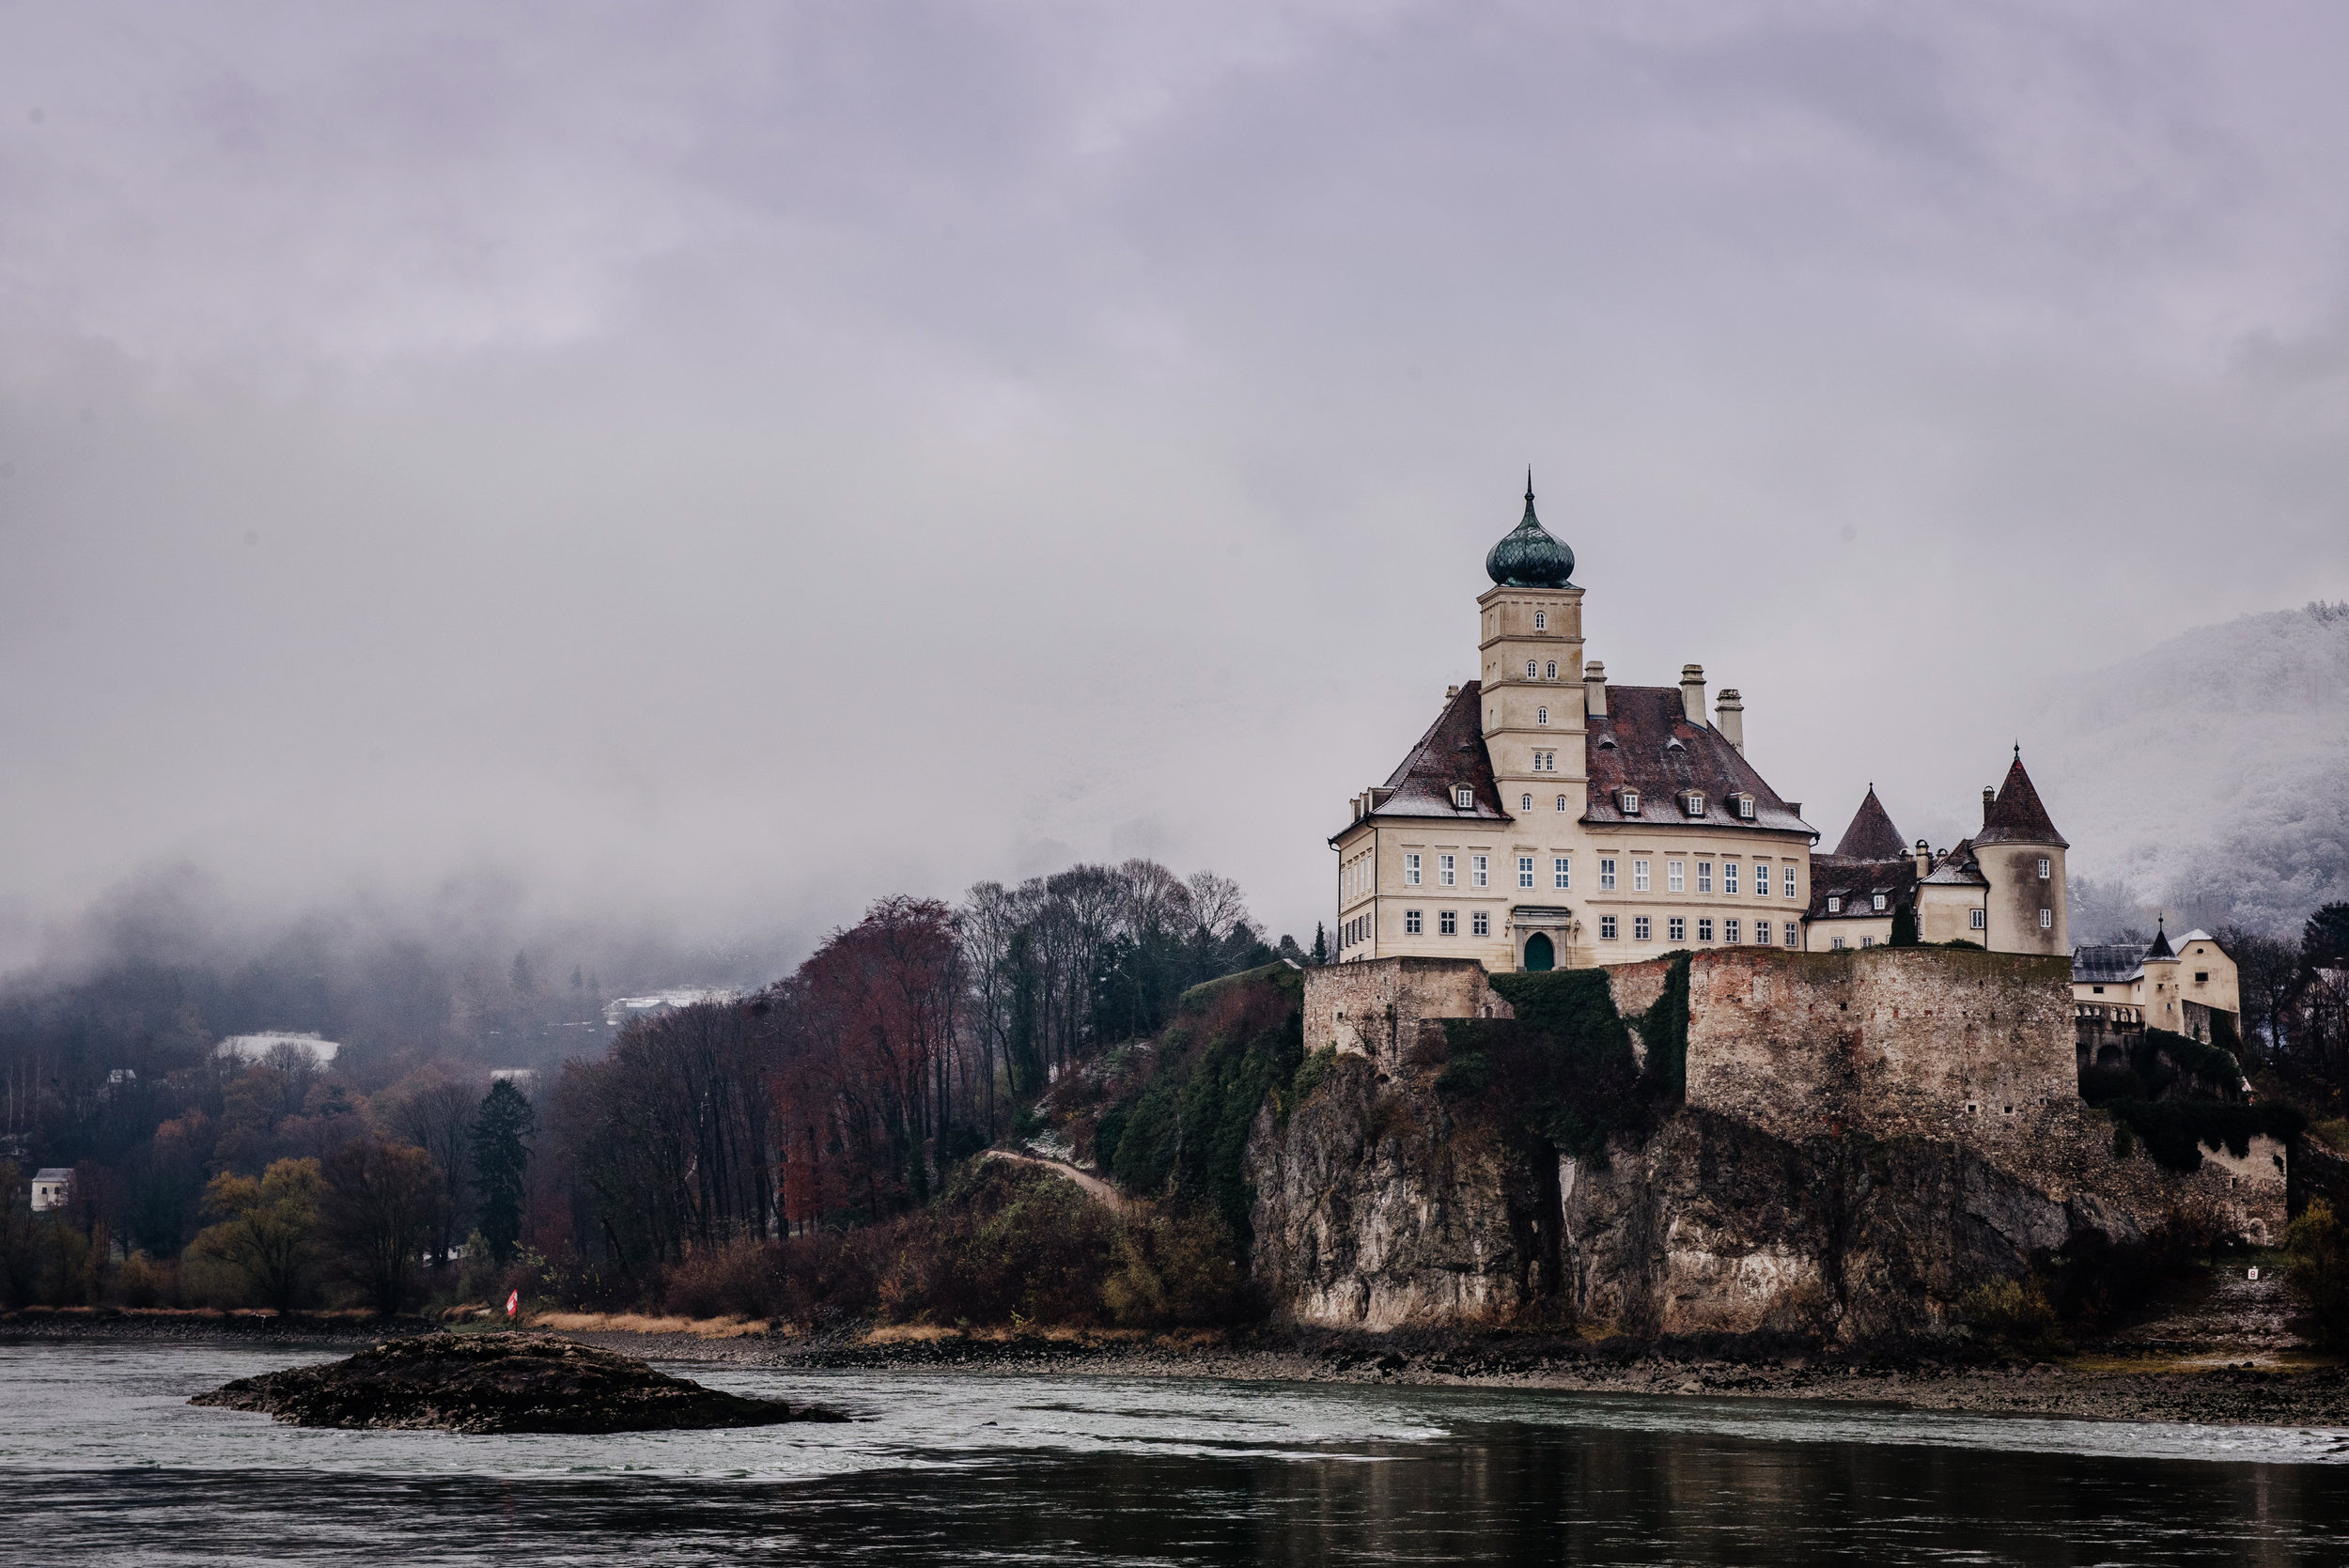 The Schonbuhel Castle on the Danube